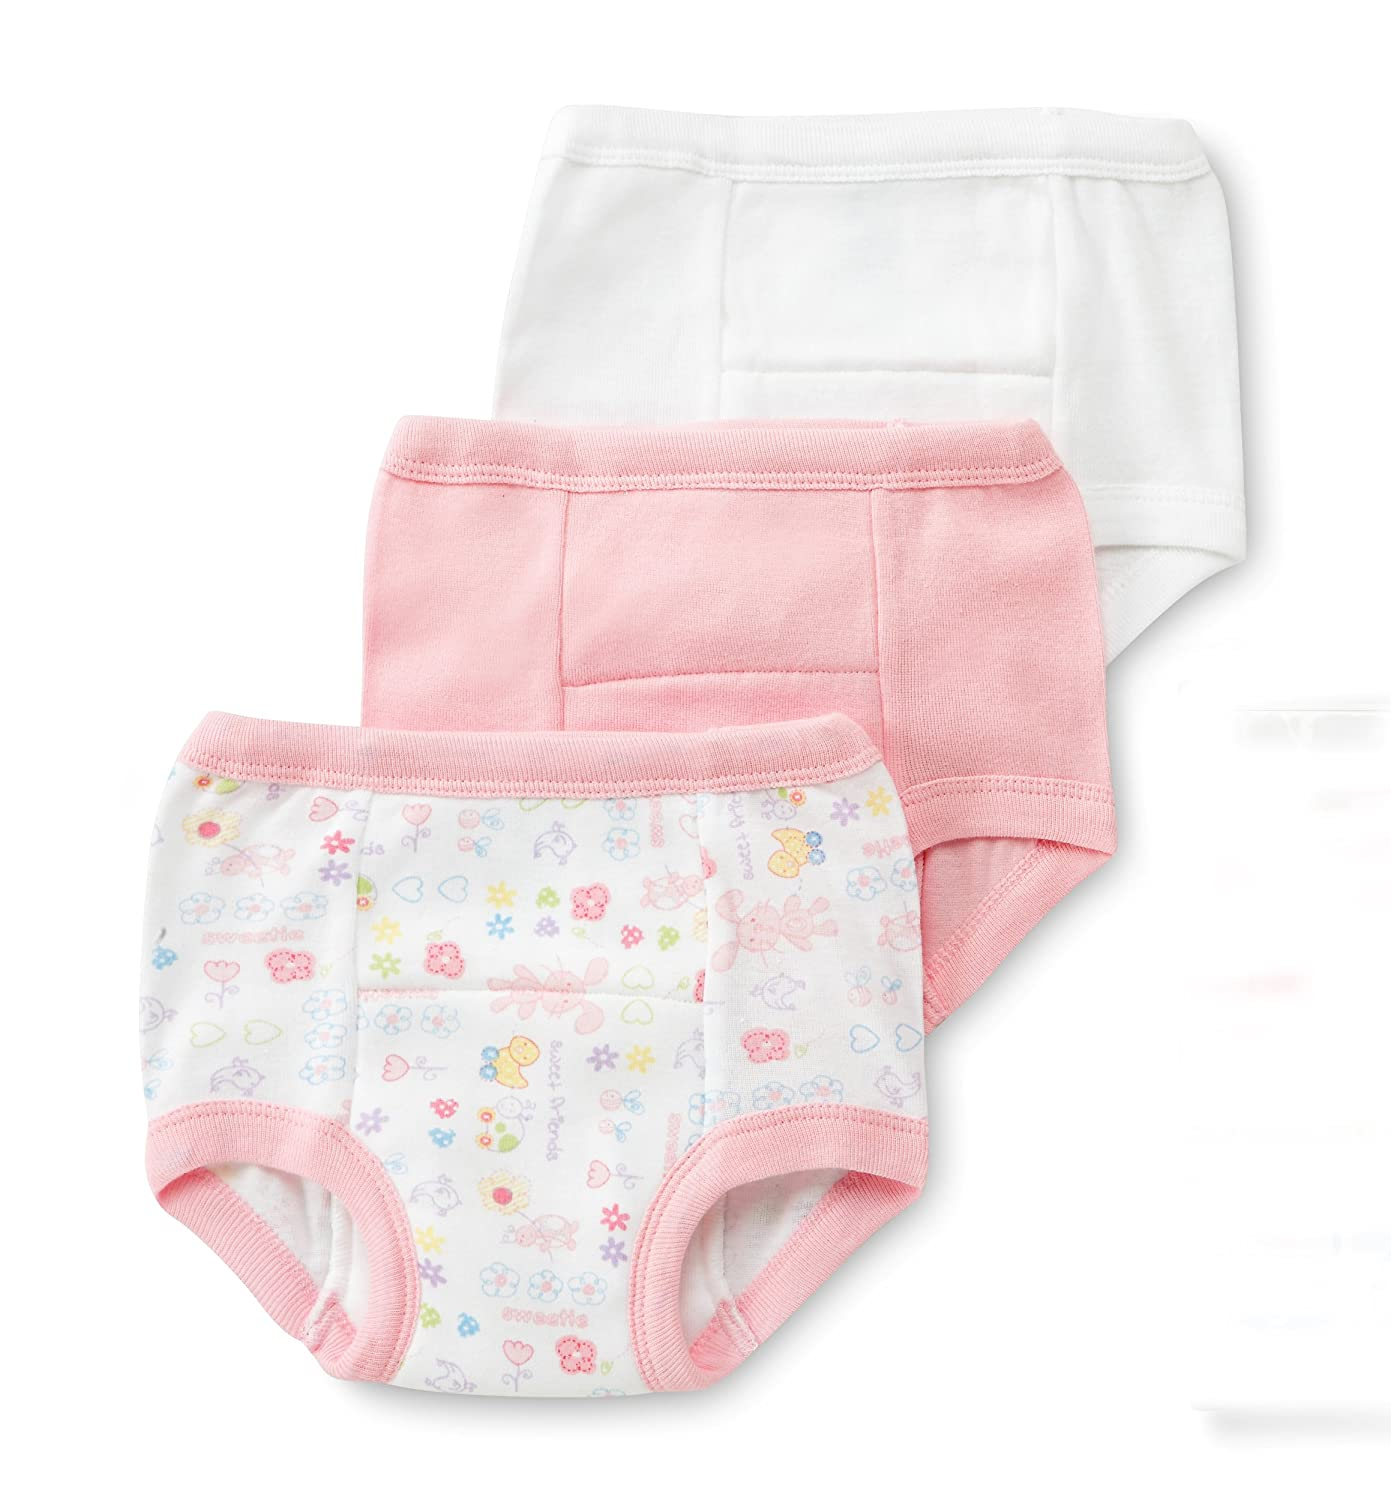 NEW Gerber Plastic Pants 3T Fits 32 35 lbs 4 pairs FREE SHIPPING